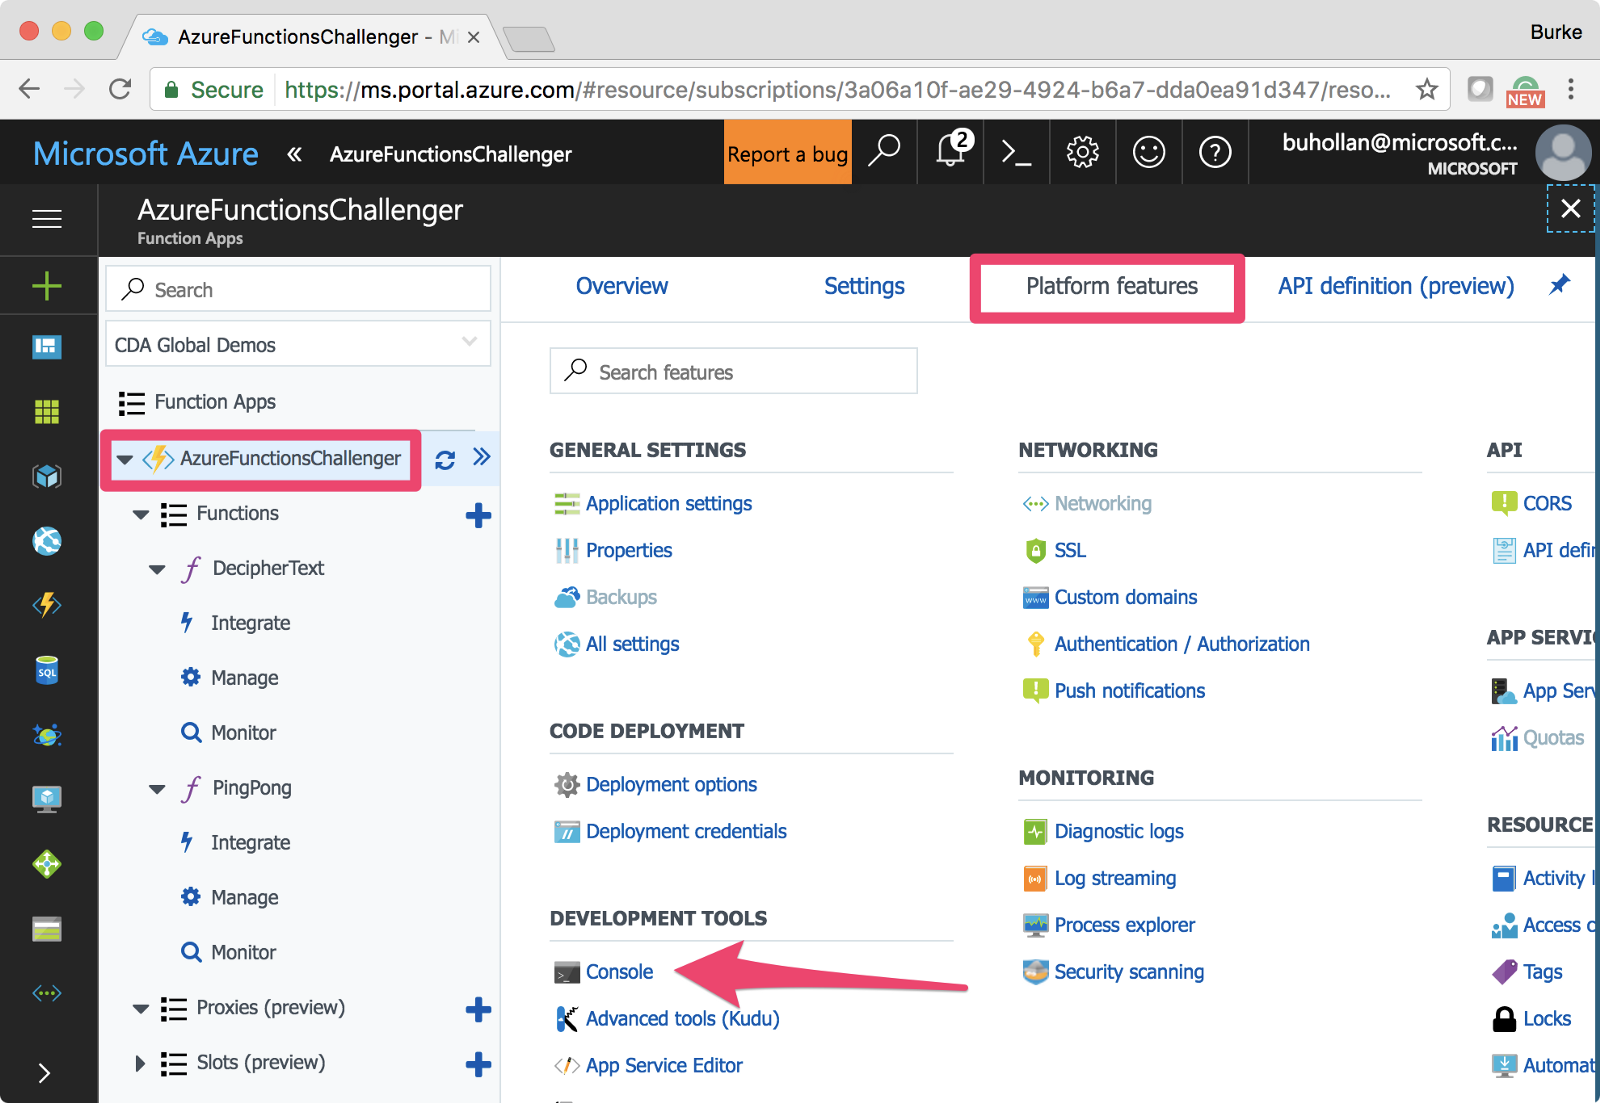 Solving The Azure Functions Challenge With Javascript